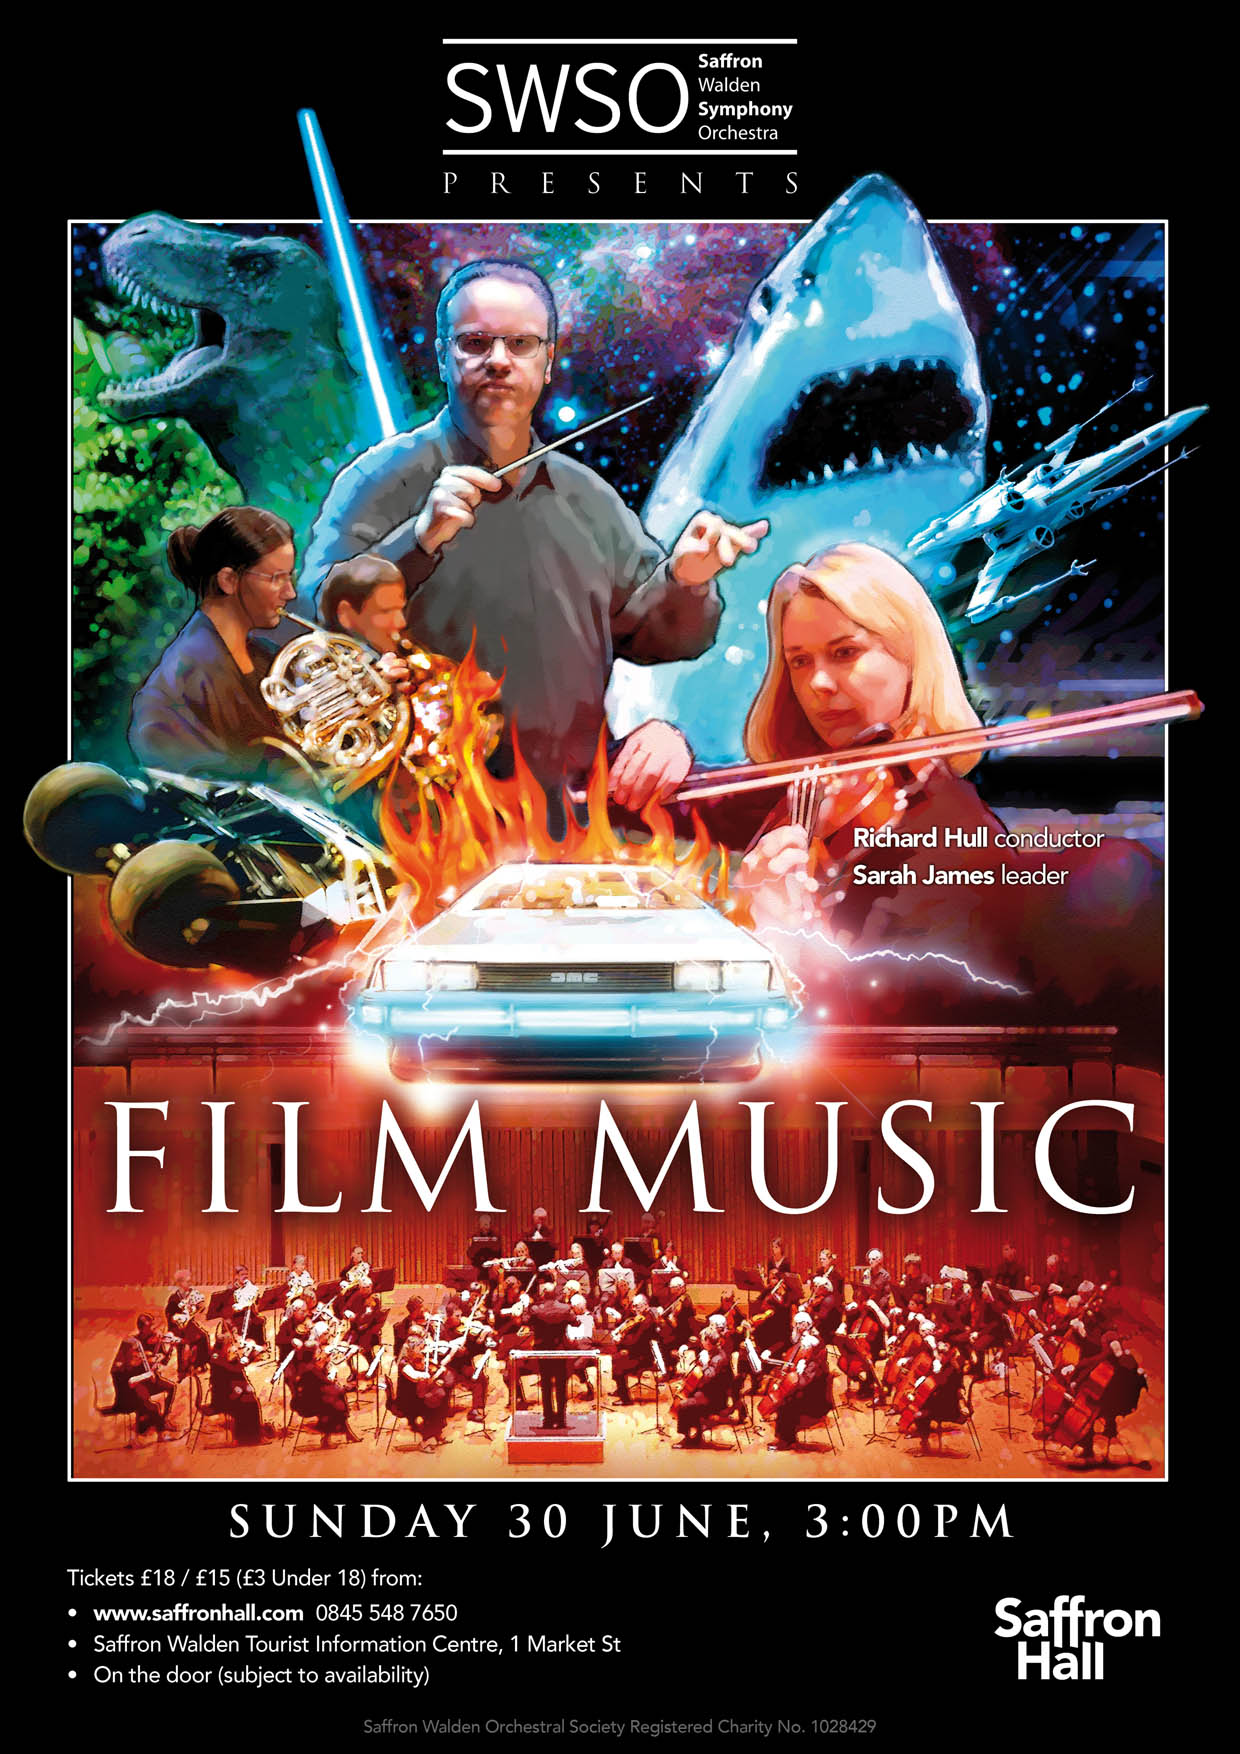 Review: June 2019 film music concert